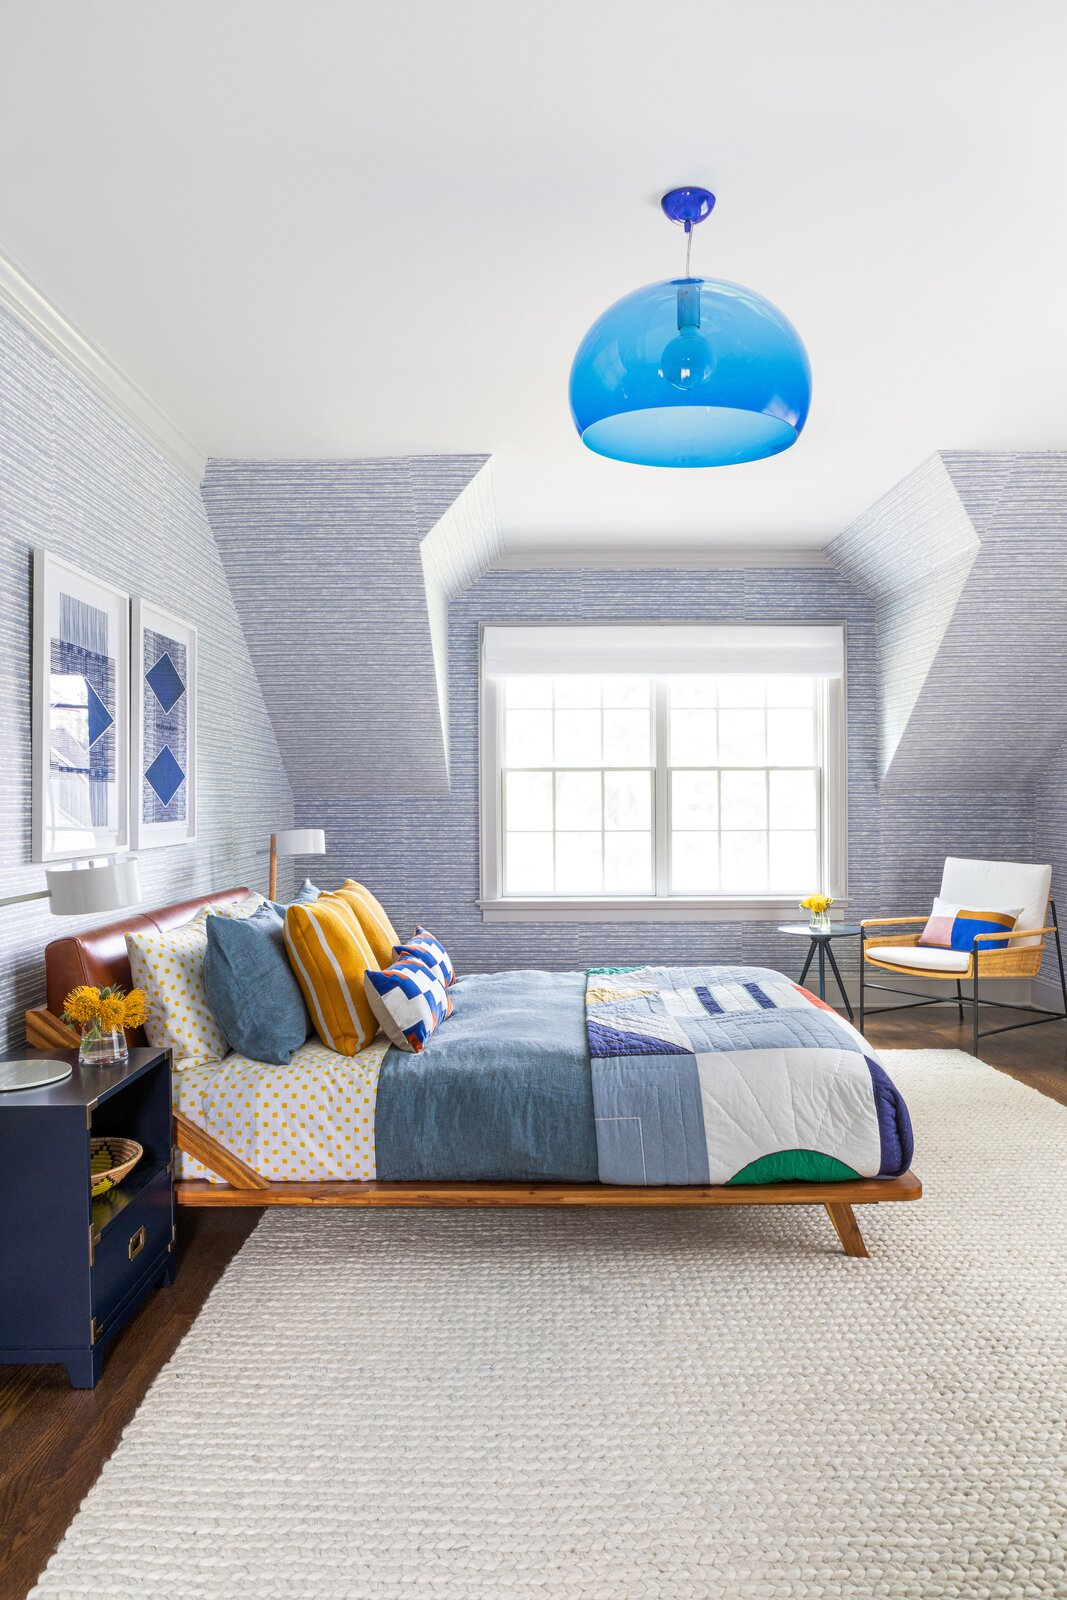 A boy's bedroom by Chango & Co. pairs a queen bed from Crate and Barrel with a bulbous blue light from Hive. The wallpaper is from Holly Hunt.  Photo 12 of 13 in How to Design a Room That Grows Up With Your Kids